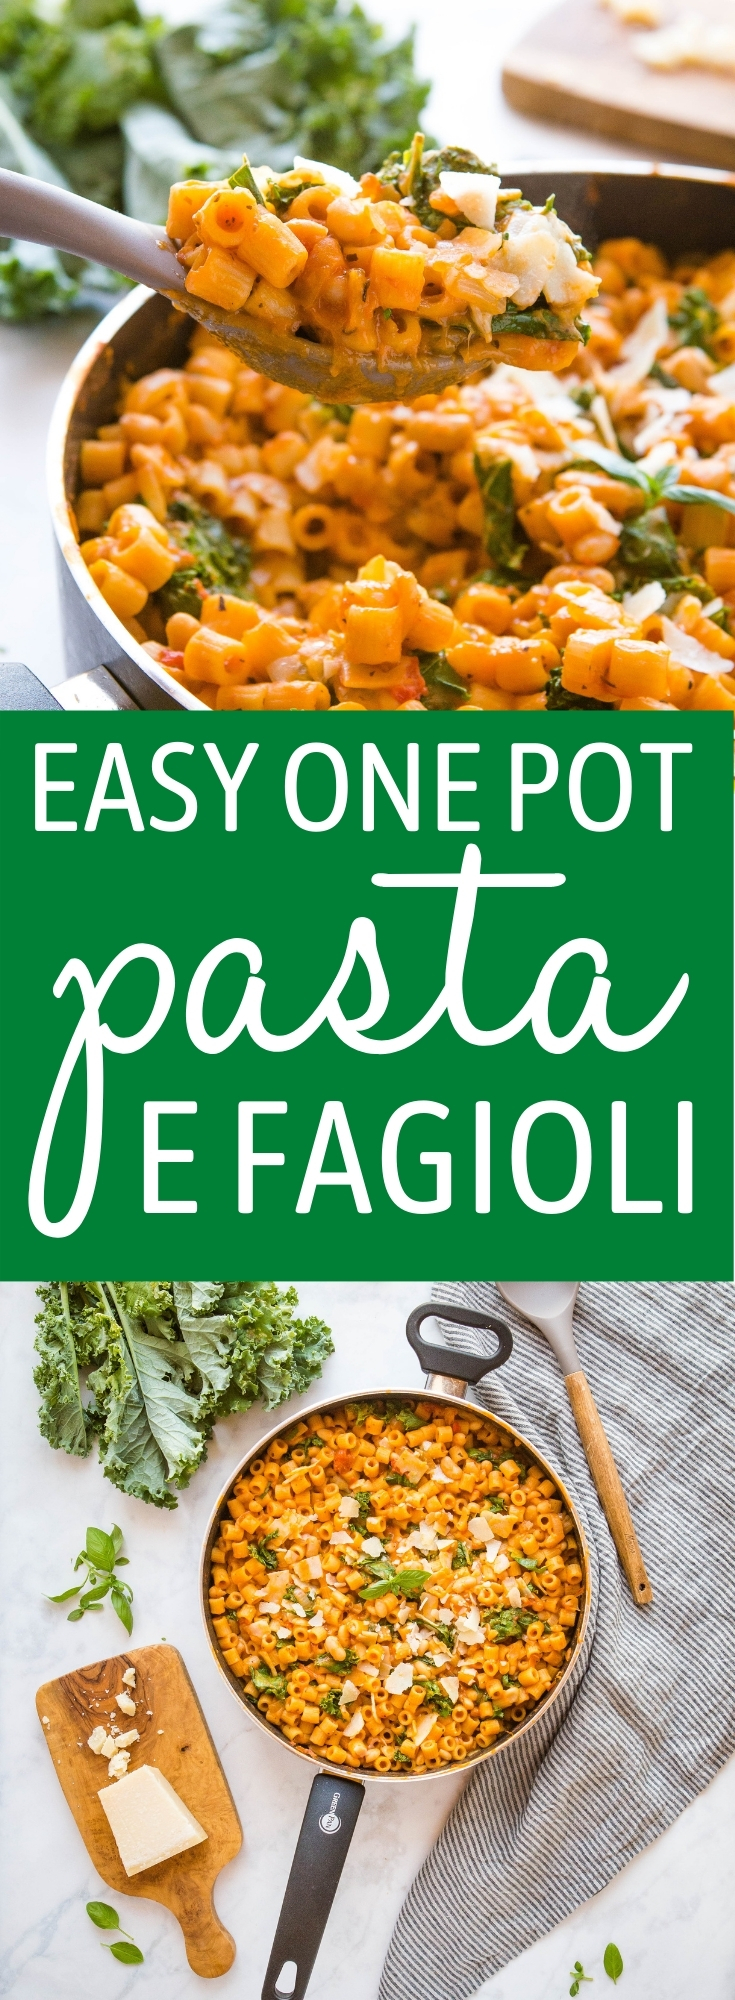 This One Pan Pasta with Beans is the perfect vegetarian easy weeknight meal made with basic pantry ingredients - plant-based and on the table in 25 minutes or less! Recipe from thebusybaker.ca! #pastaefagioli #italian #onepotpasta #onepan #weeknightmeal #easymeal #vegetarian via @busybakerblog